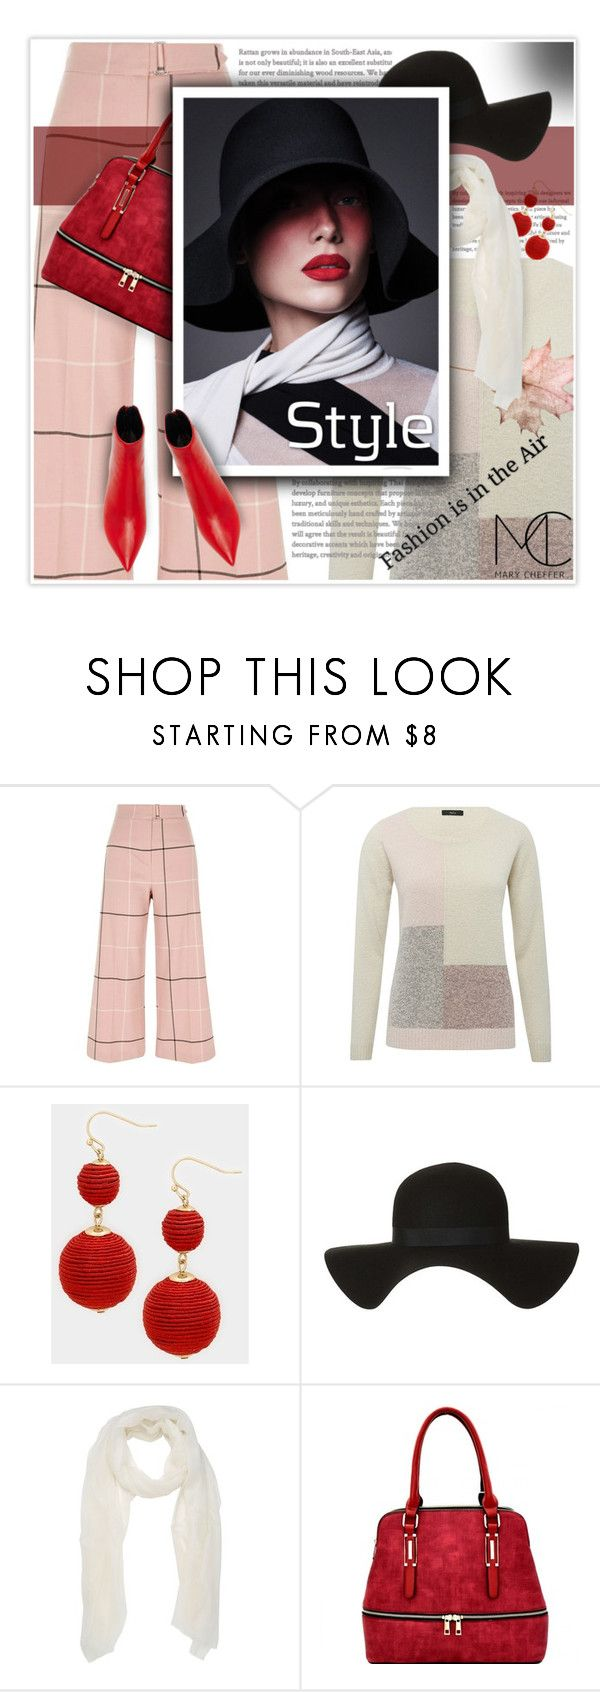 """""""Fashion is in the Air"""" by mcheffer ❤ liked on Polyvore featuring River Island, M&Co, Topshop, Alexandre Birman, hat, booties, mcheffer, marycheffer and marycheffertictail"""